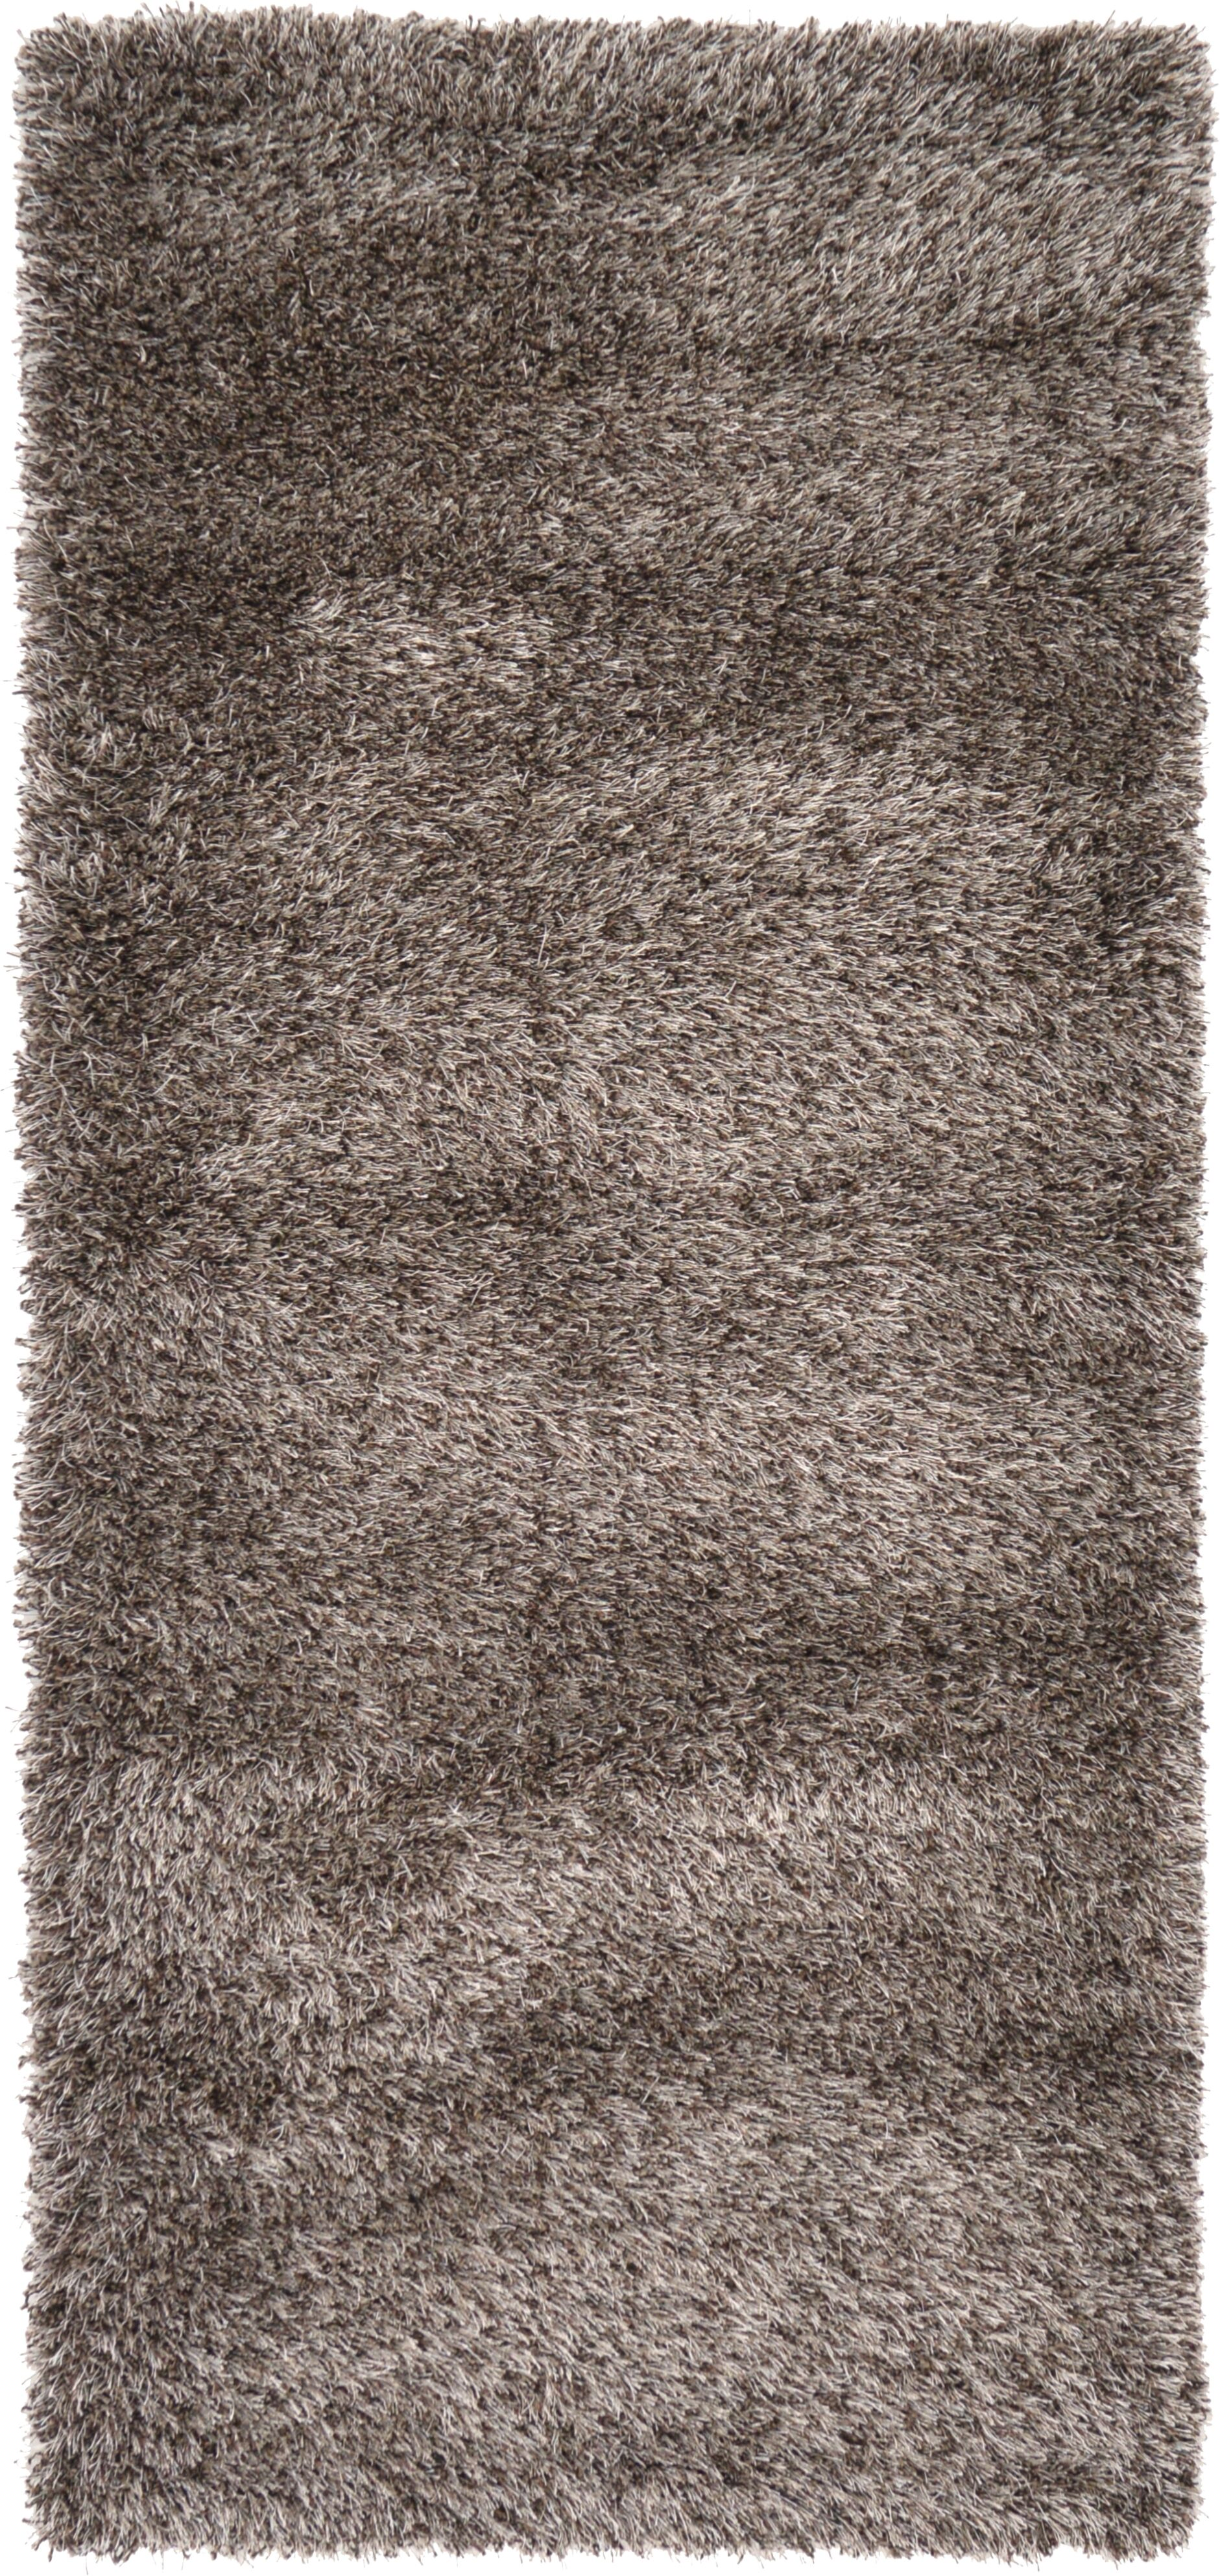 Evelyn Pinecone Brown Area Rug Rug Size: Runner 2'7